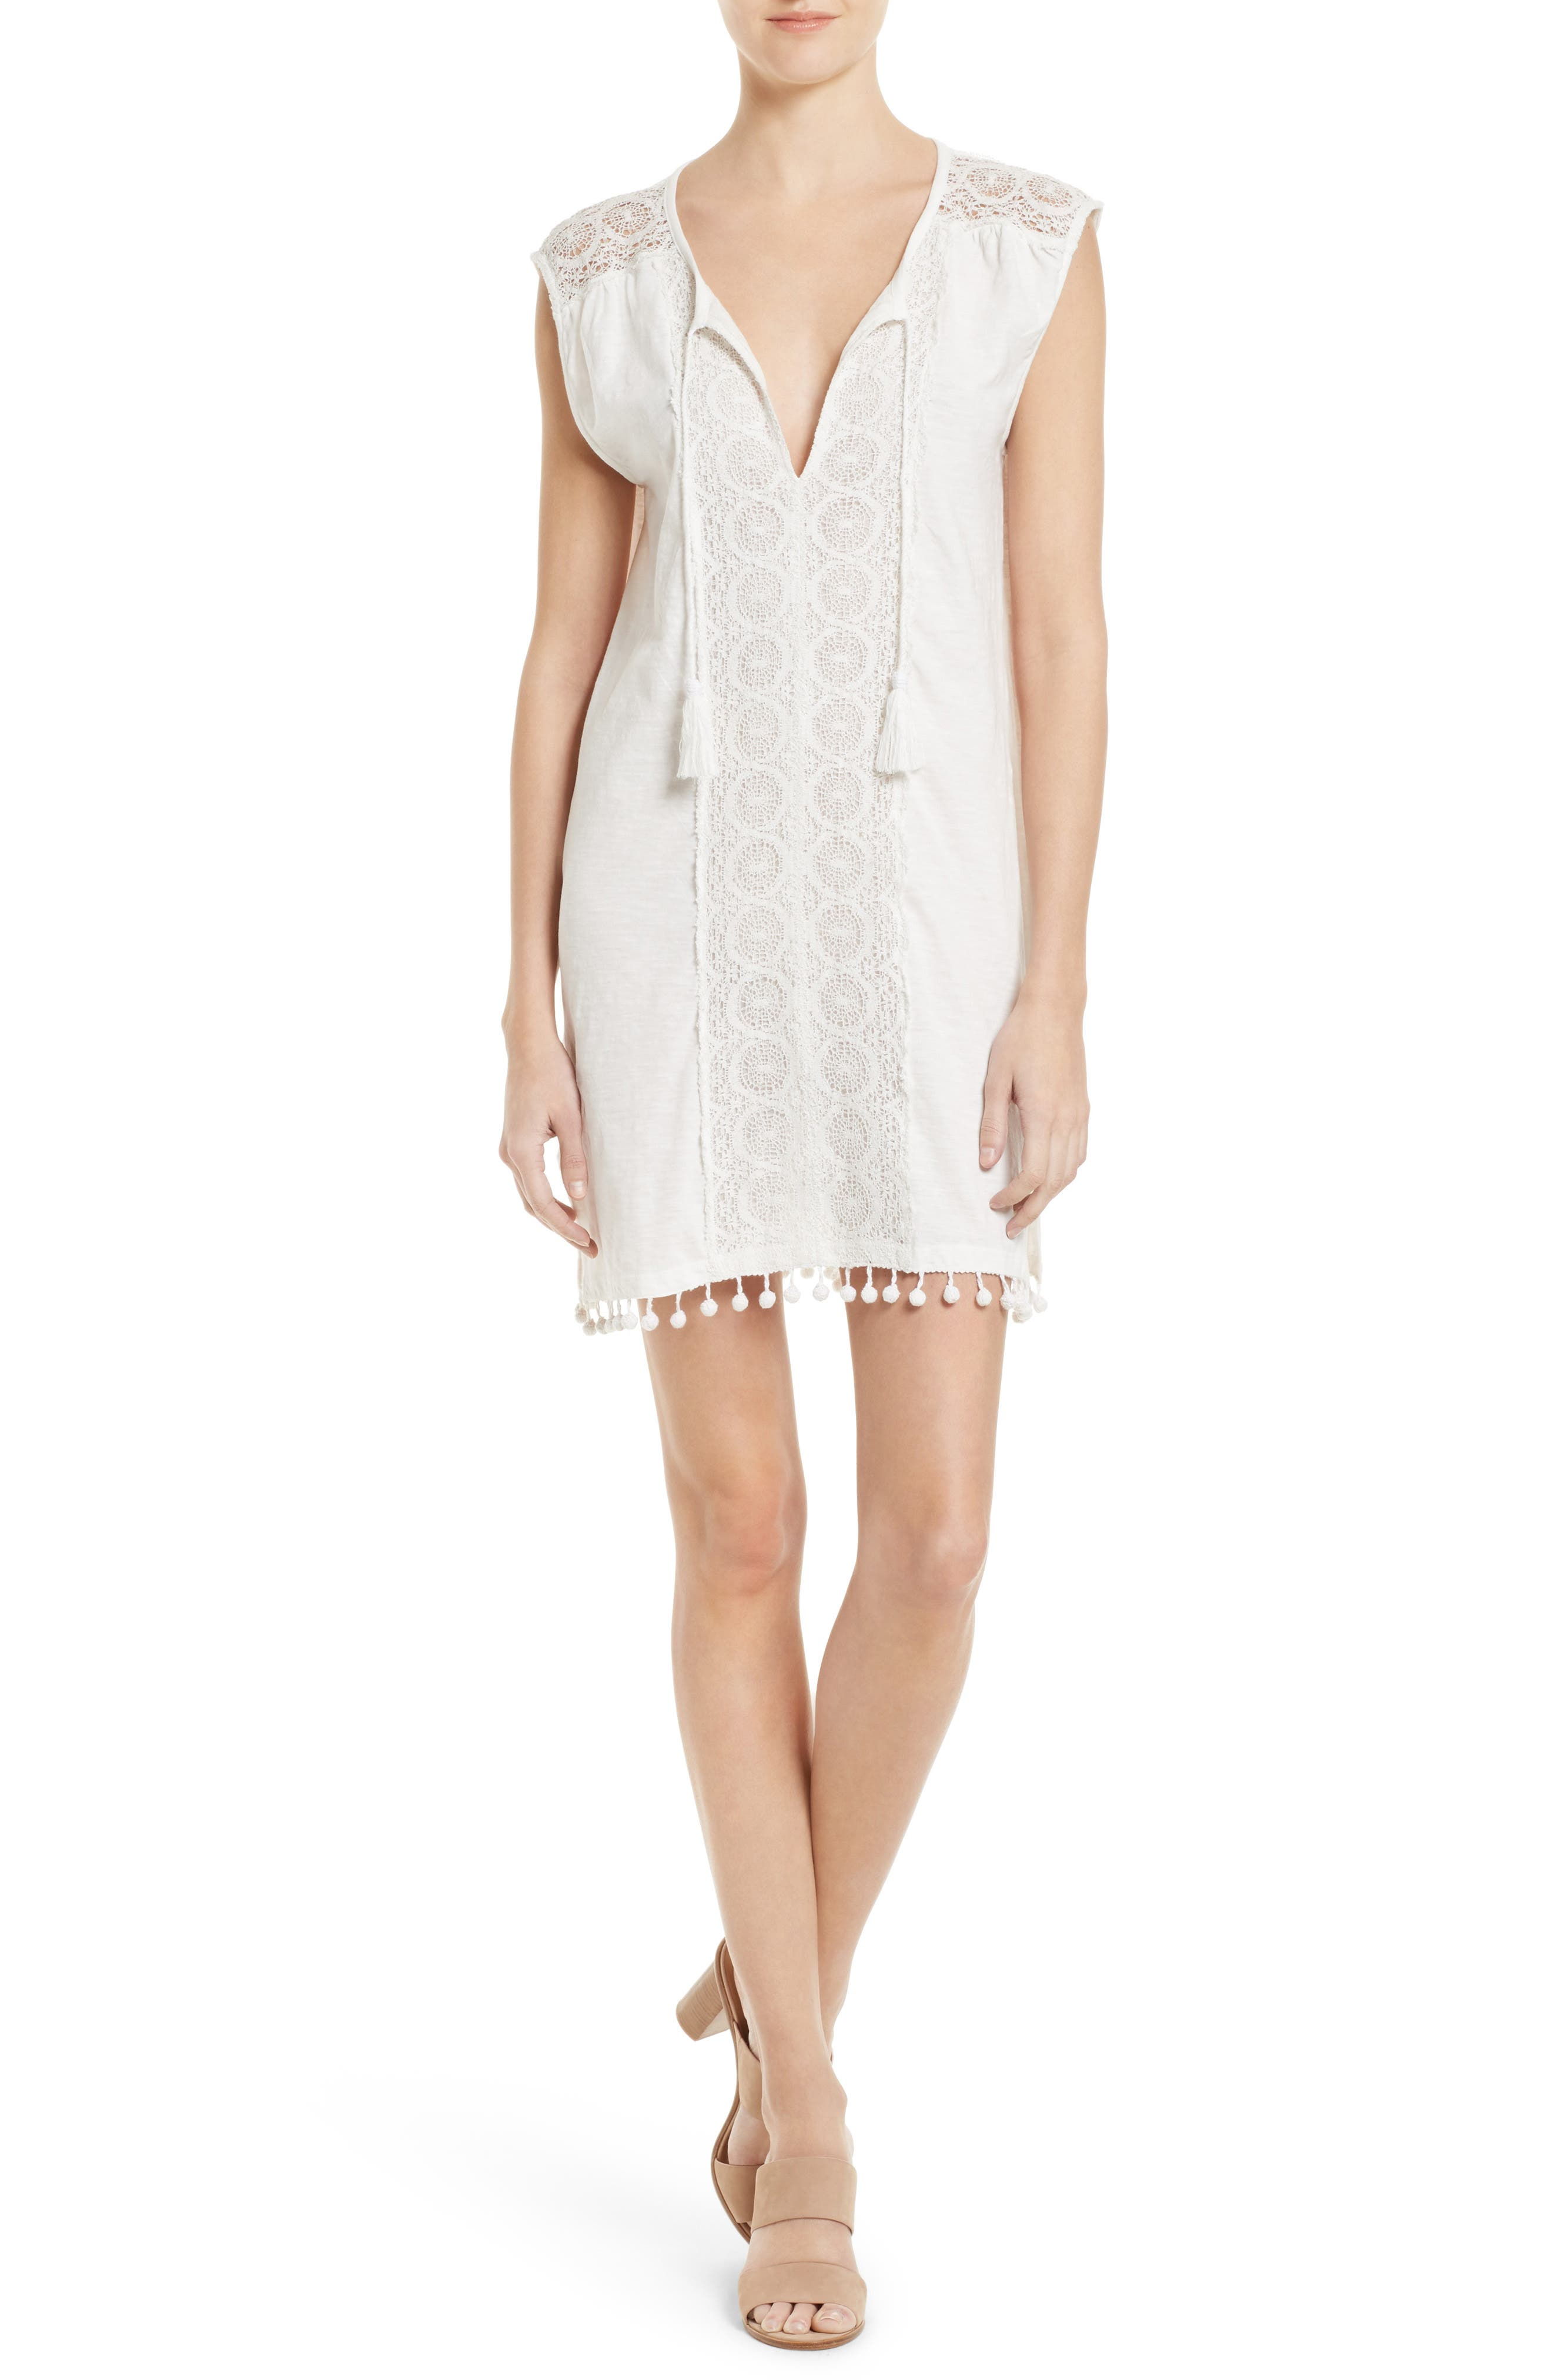 Soft Joie Kanae Lace Trim Shift Dress